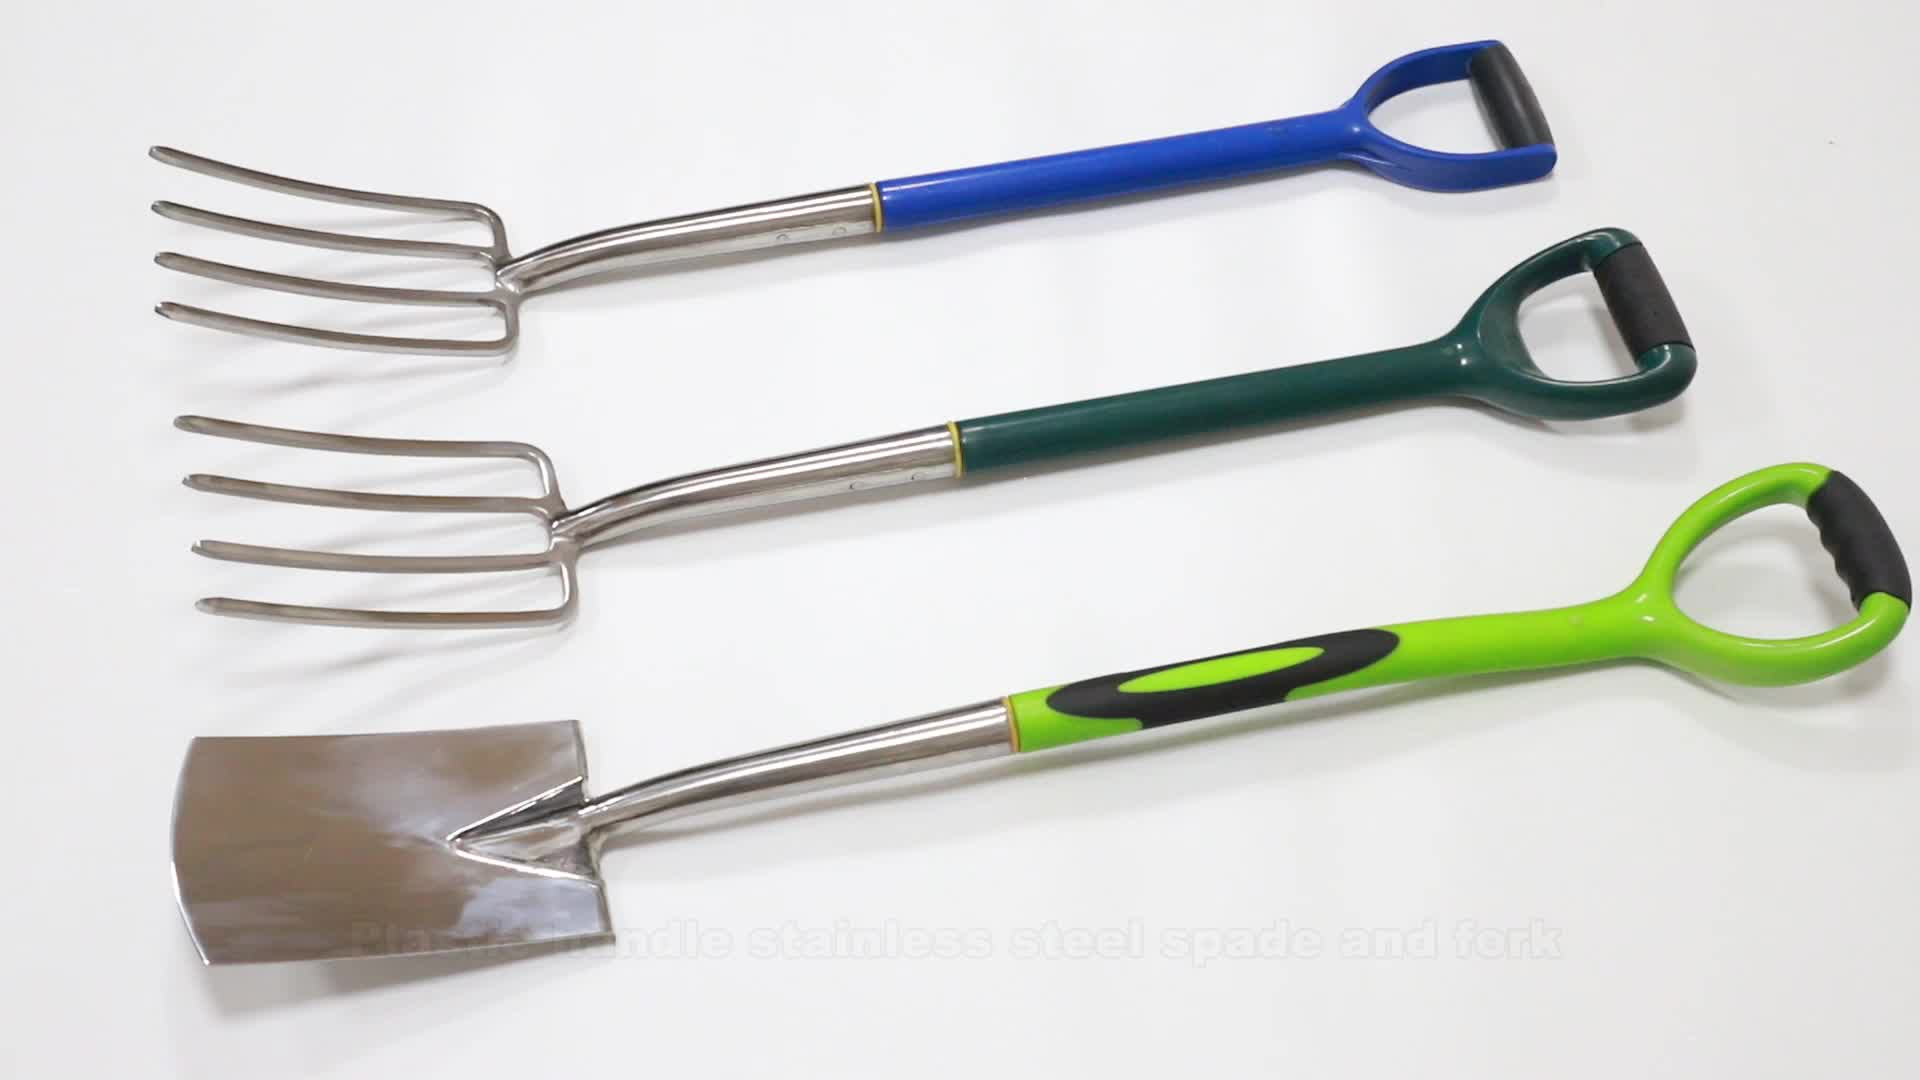 FSC ash wood handle, high quality, carbon steel head, Spade& Fork